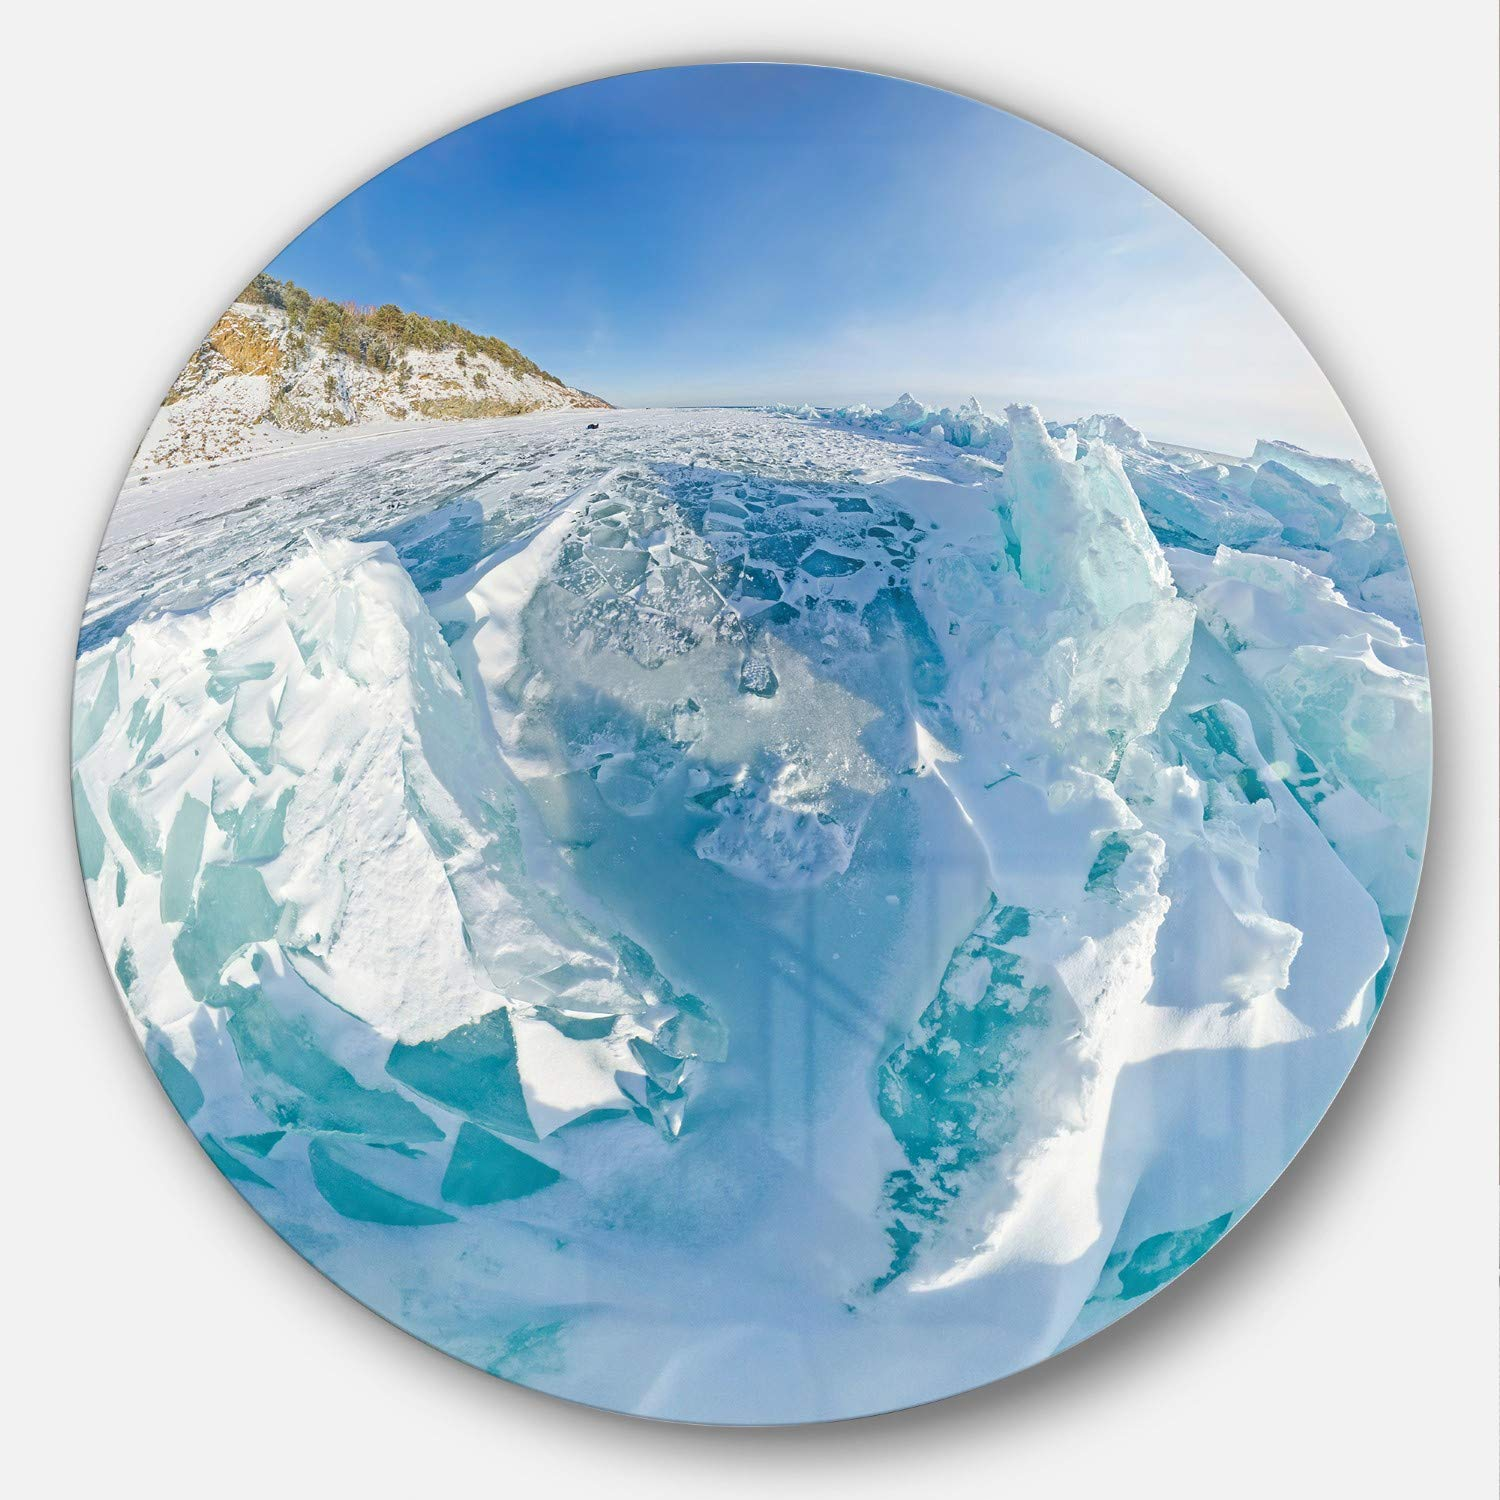 Designart Blue Ice Mountains In Lake Baikal Siberia Landscape Large Metal Wall Art Disc Of 38 38x38 Disc Of 38 Inch White Amazon In Home Kitchen